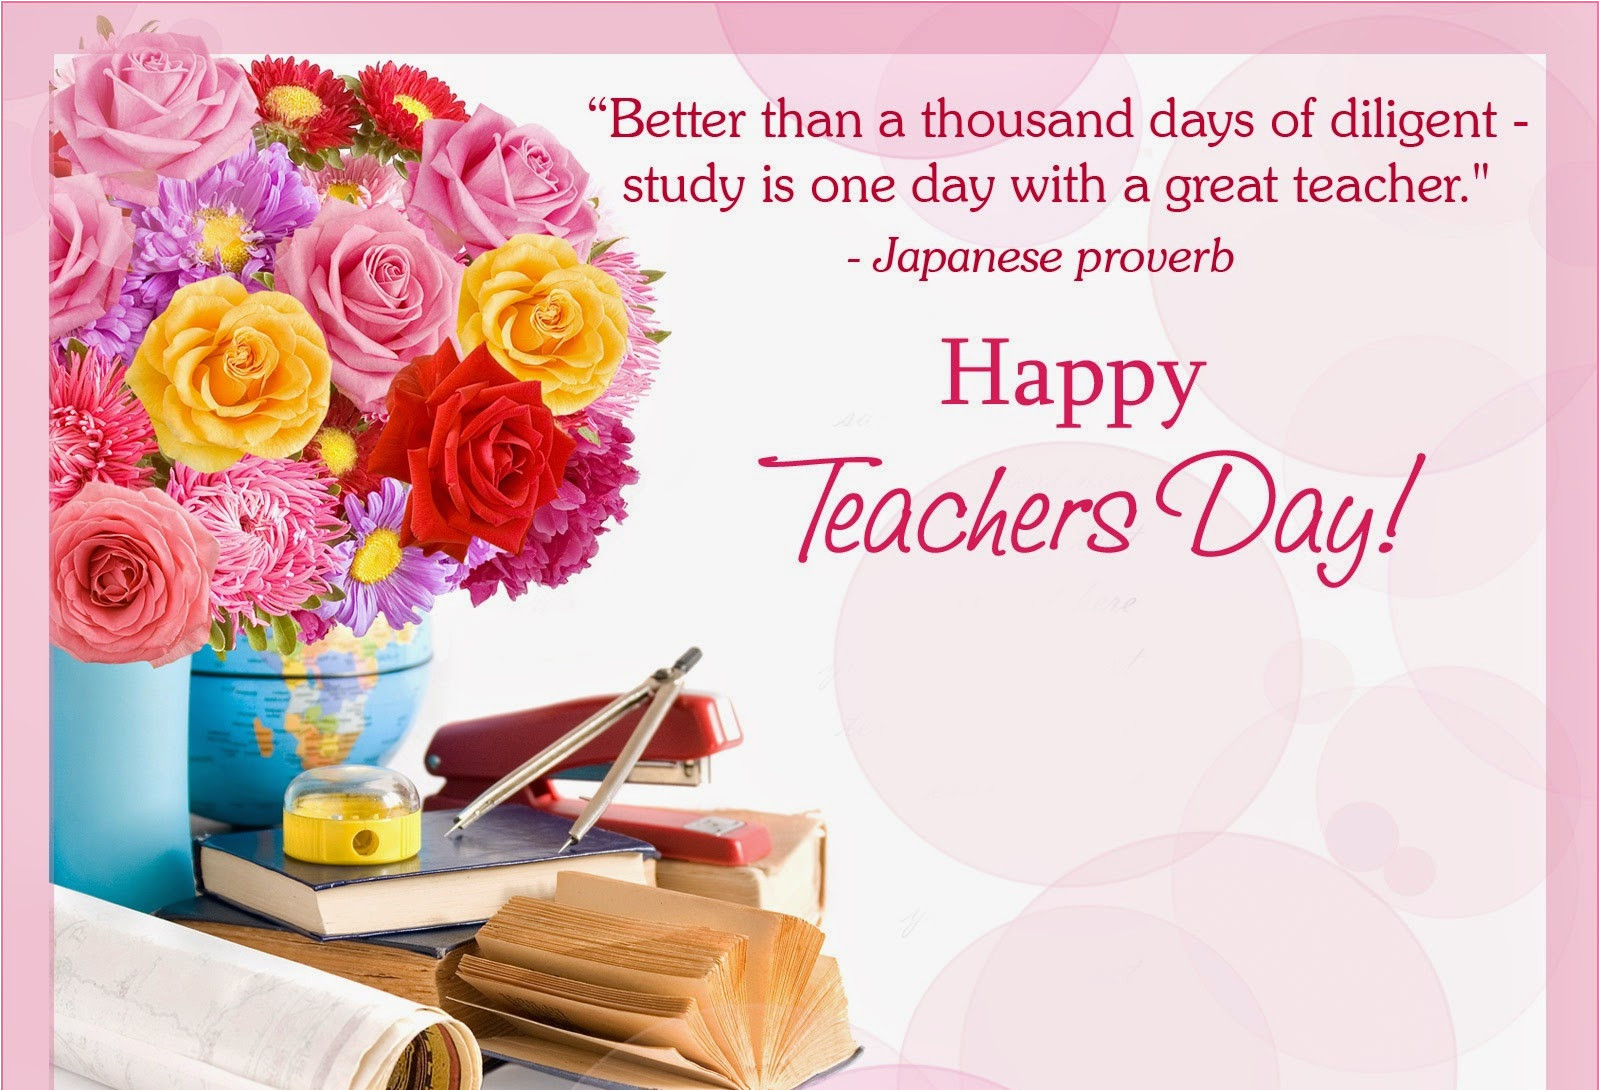 happy world teachers day messages wishes poems quotes images whatsapp status fb dp 5th oct 2015